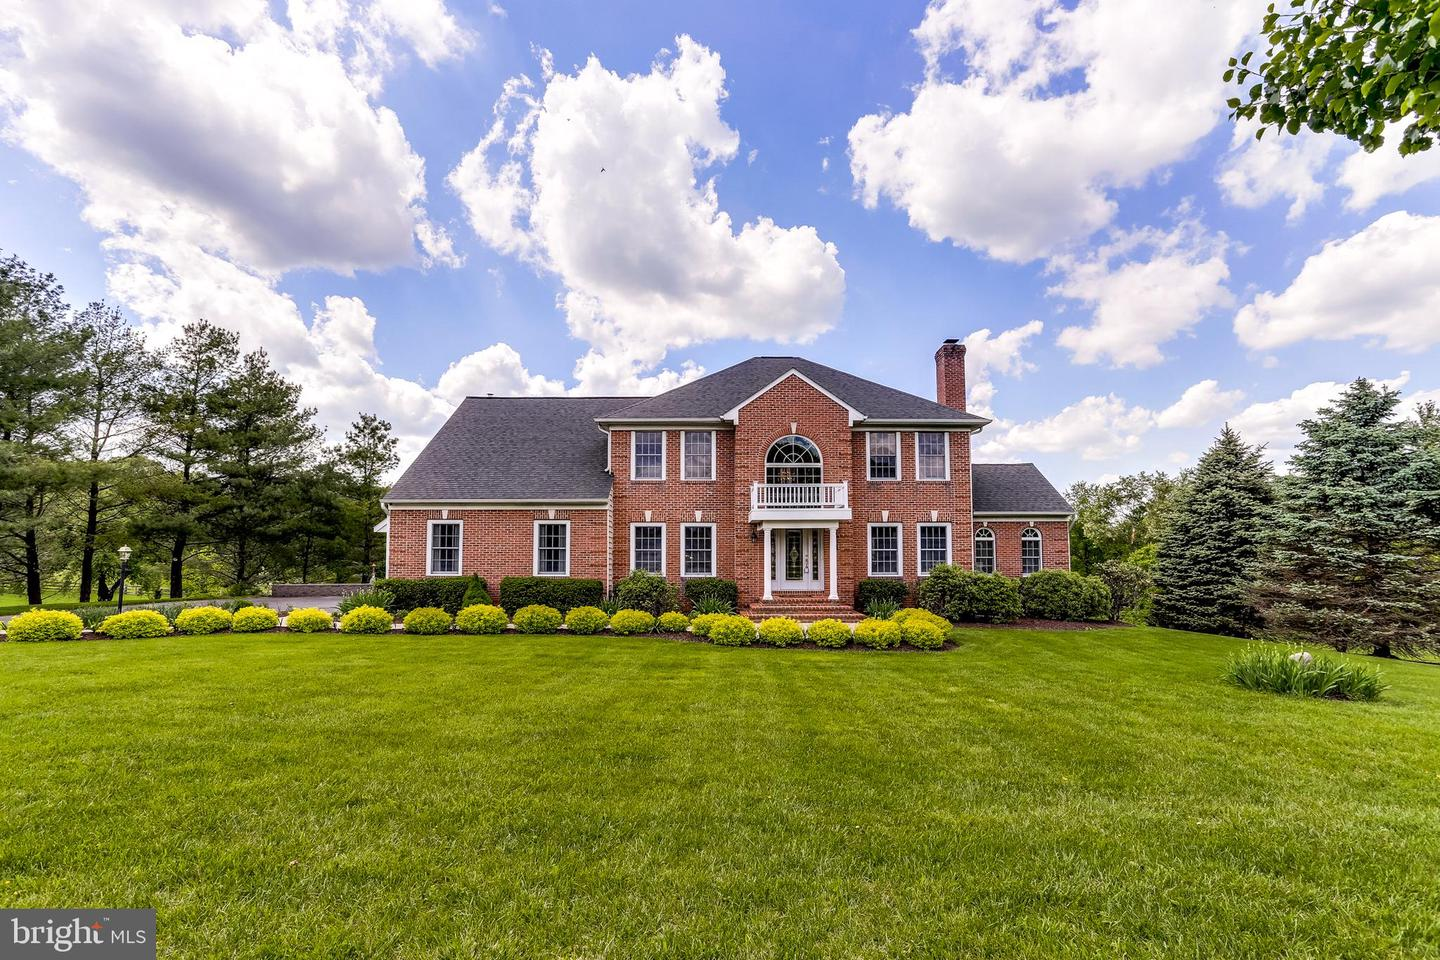 Additional photo for property listing at 3240 Roscommon Dr Glenelg, Maryland 21737 United States